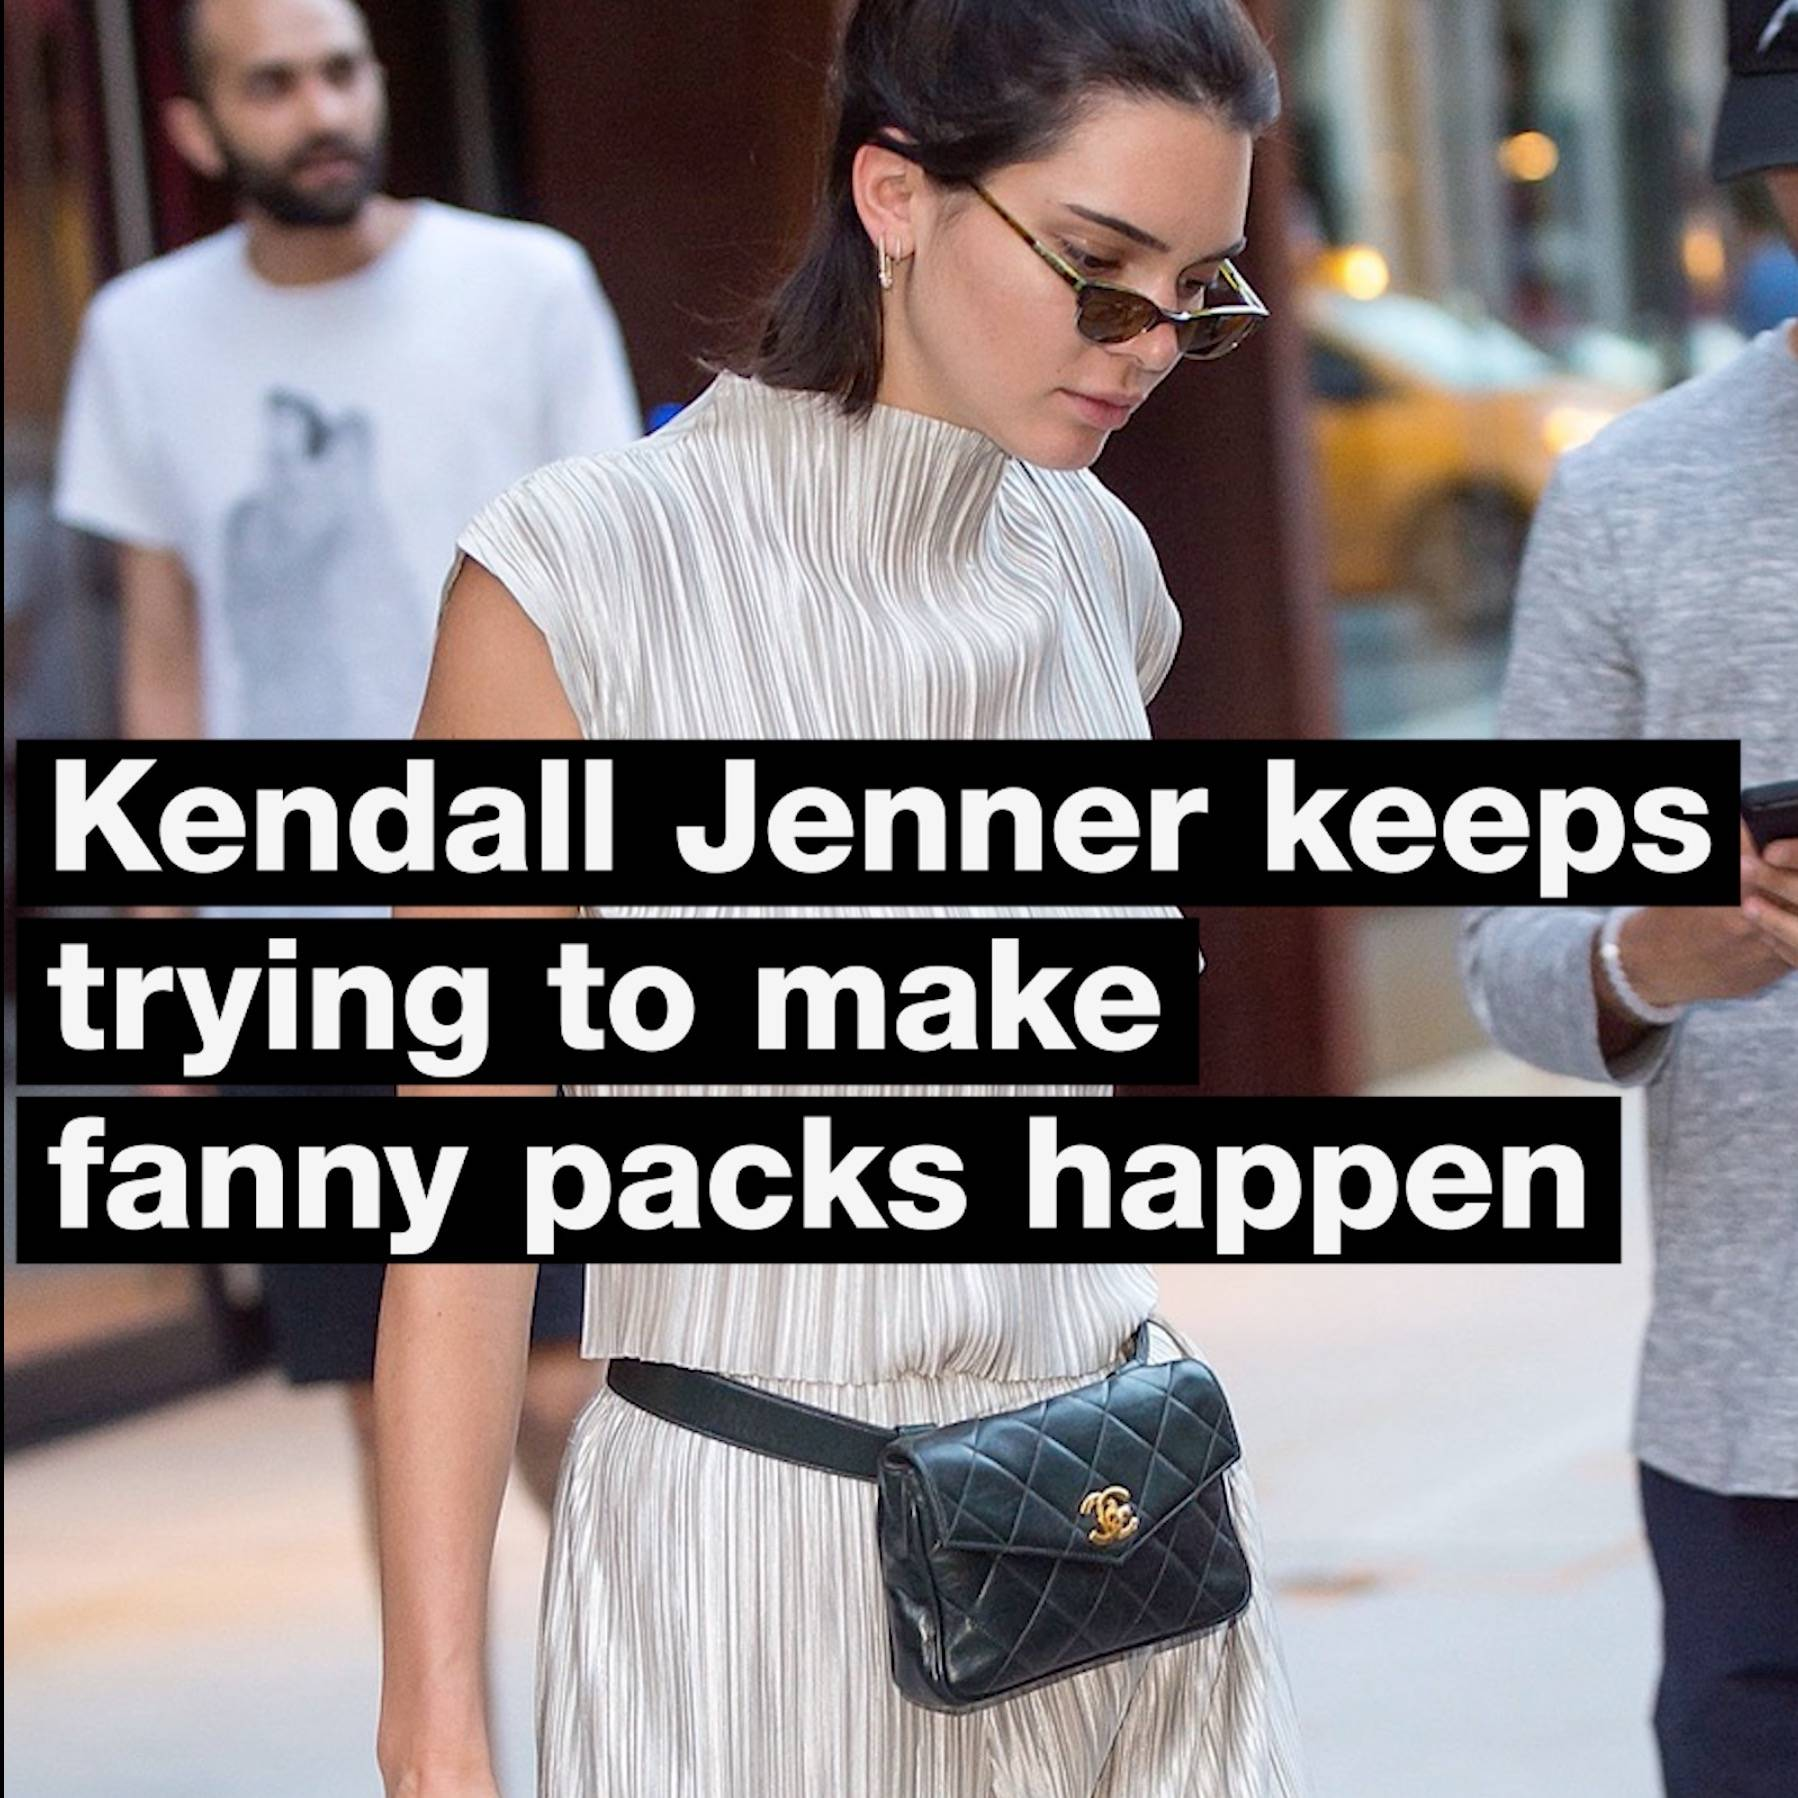 e94c70257535 Kendall Jenner Keeps Trying To Make Luxury Fanny Packs Happen - MTV News  (Video Clip) | VMA